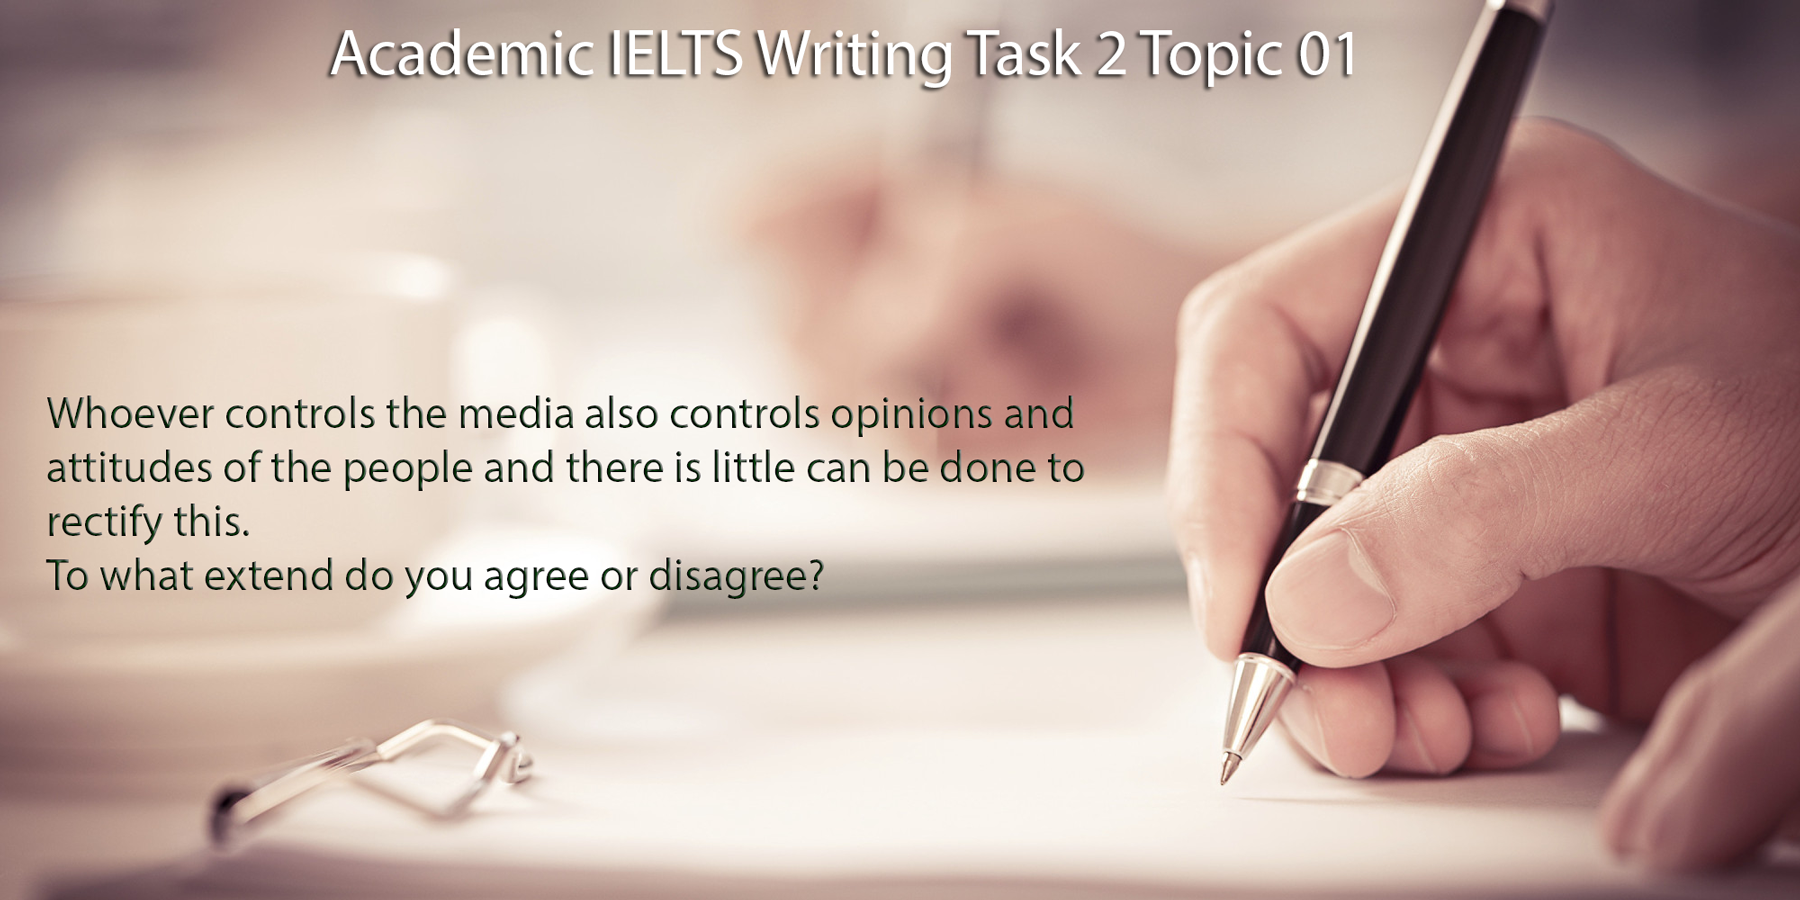 Academic IELTS Writing Task 2 Topic 01